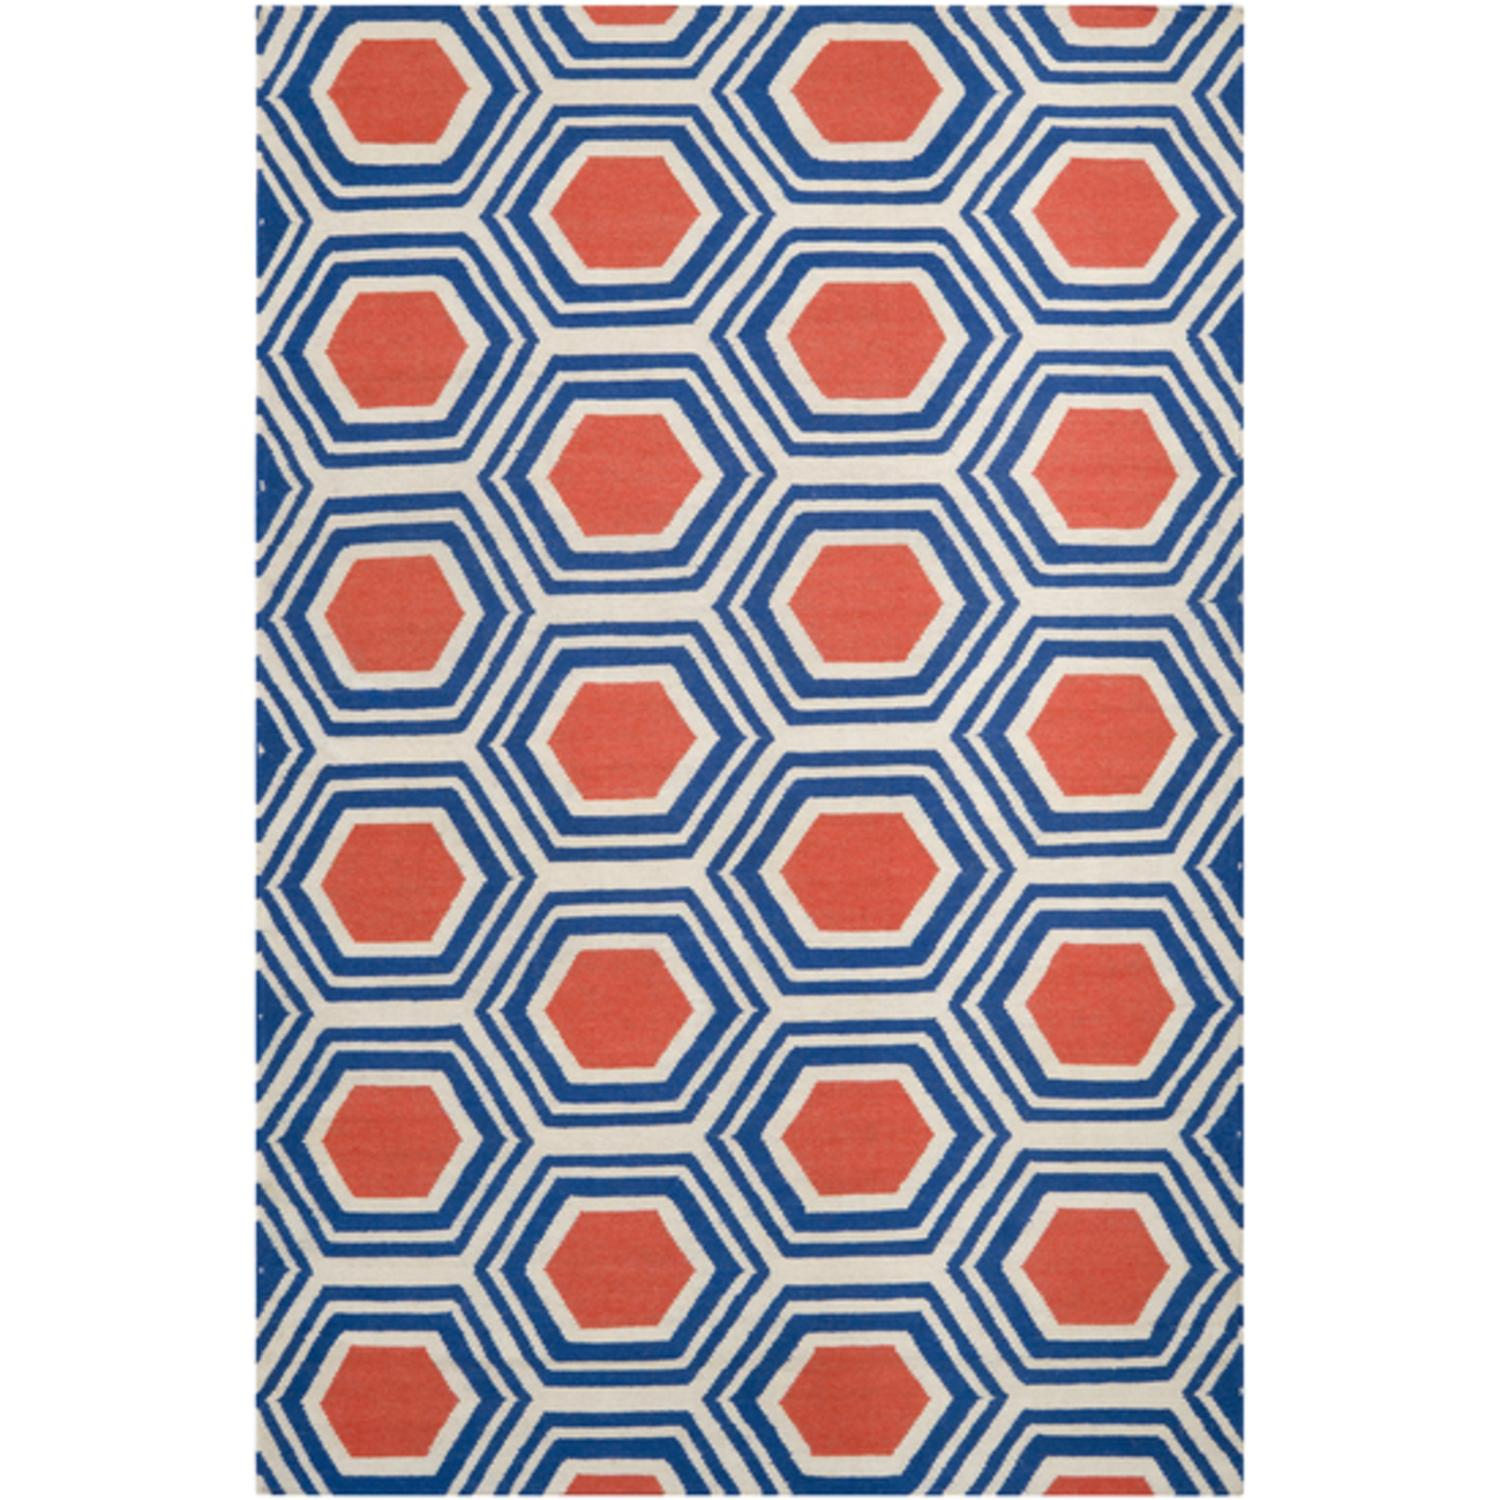 2.5' x 8' Retro Octagon Poppy Red and Blue Wool Area Throw Rug